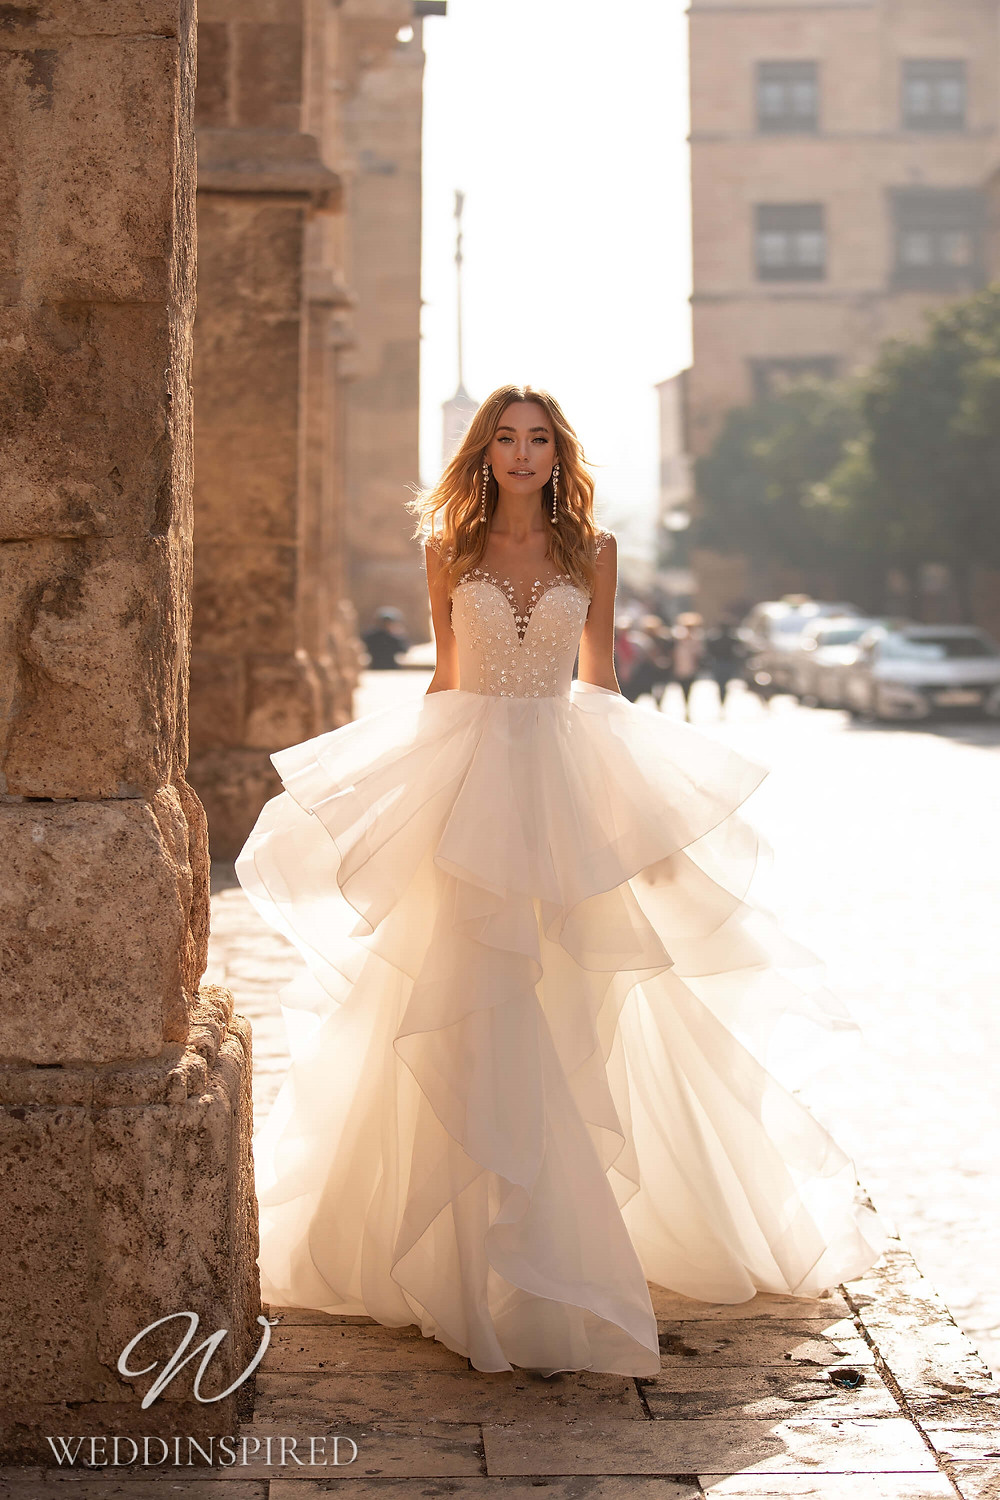 An Essential by Lussano 2021 tulle princess wedding dress with a ruffle skirt